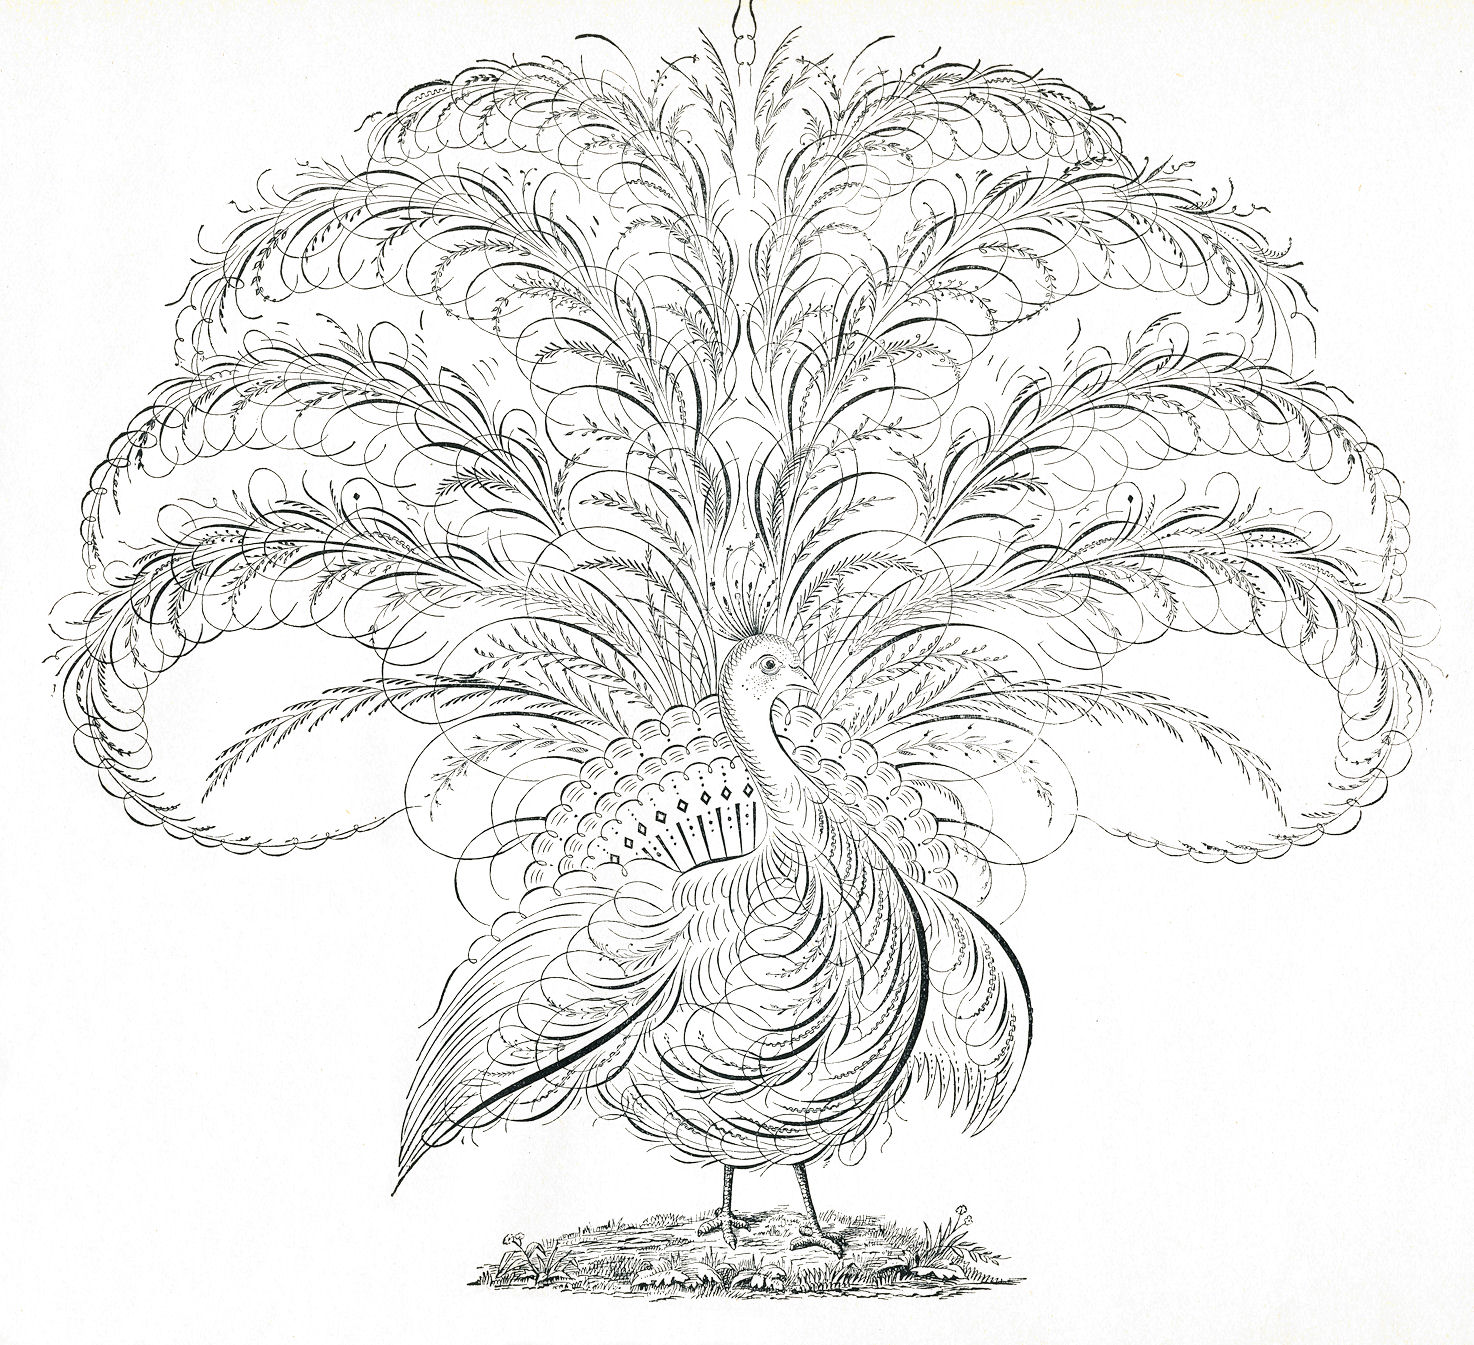 ... Clip Art - Calligraphy Peacock - Flourishes - The Graphics Fairy